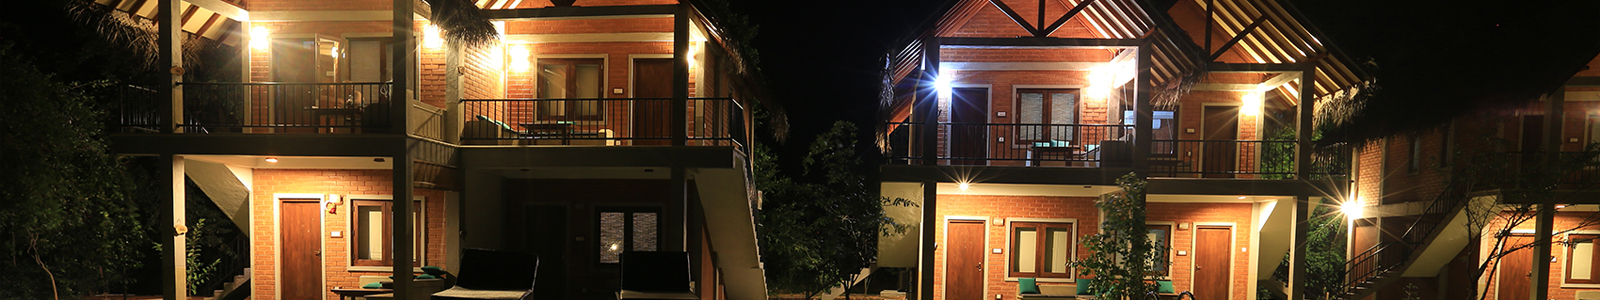 Lodges at Night